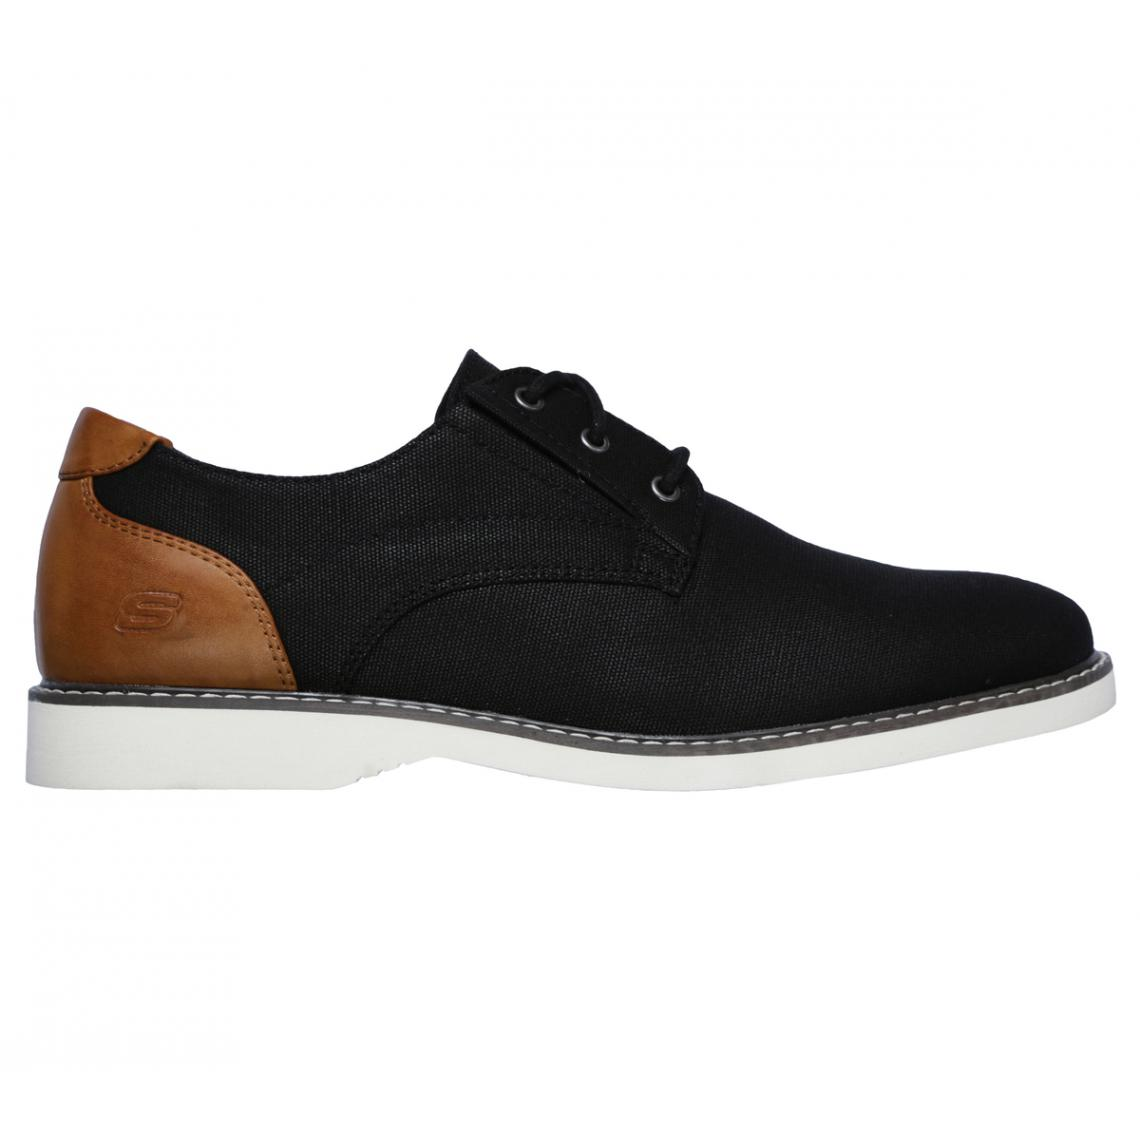 Chaussures Basses Homme Noir Skechers